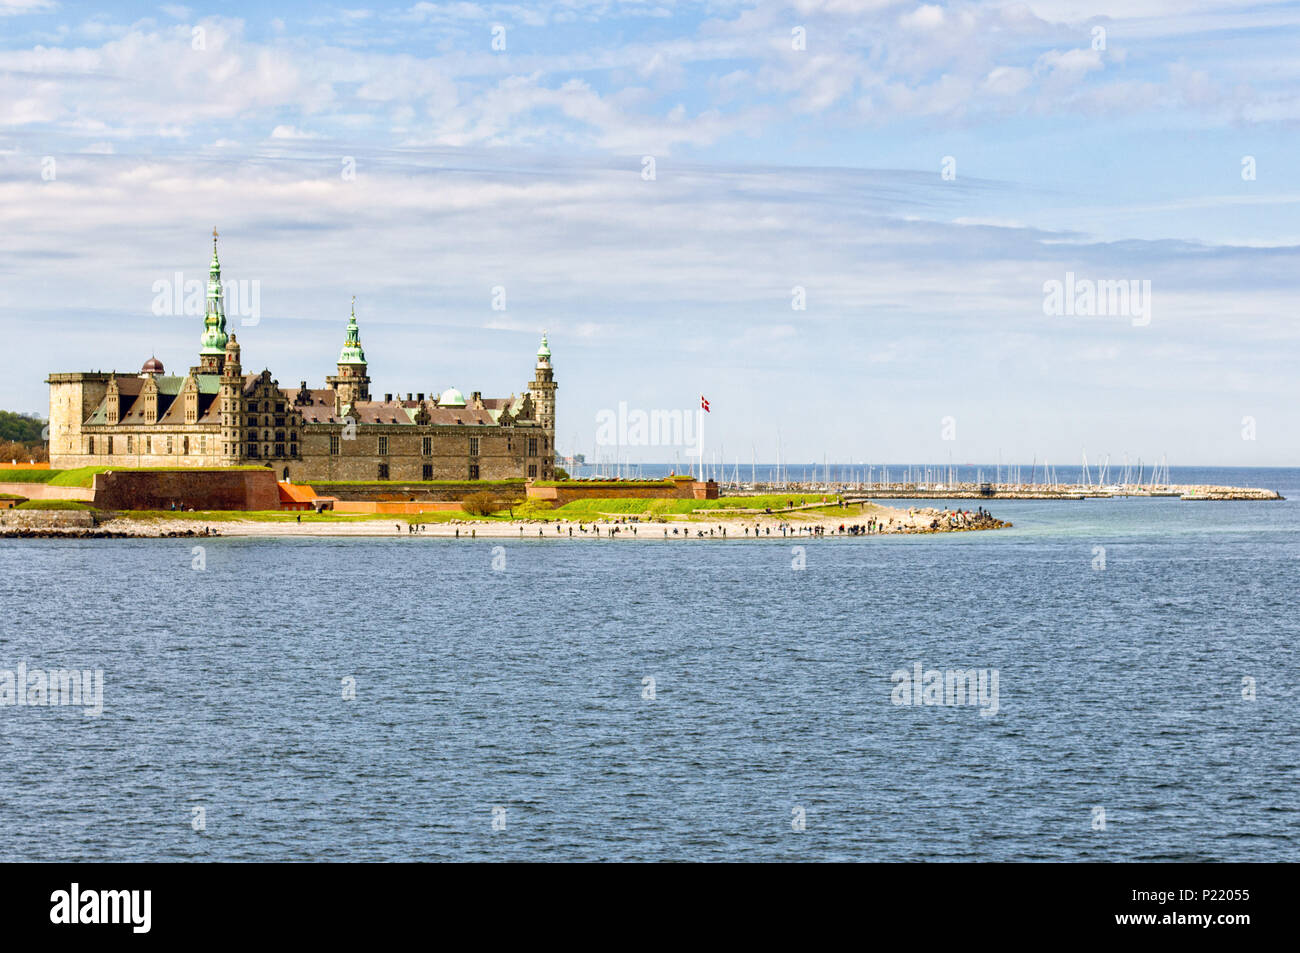 A view of Kronborg castle, the famous Hamlet's Castle with the sea and a boat in Helsingor, (Elsinore) Denmark, Europe. Shakespeare Places. - Stock Image